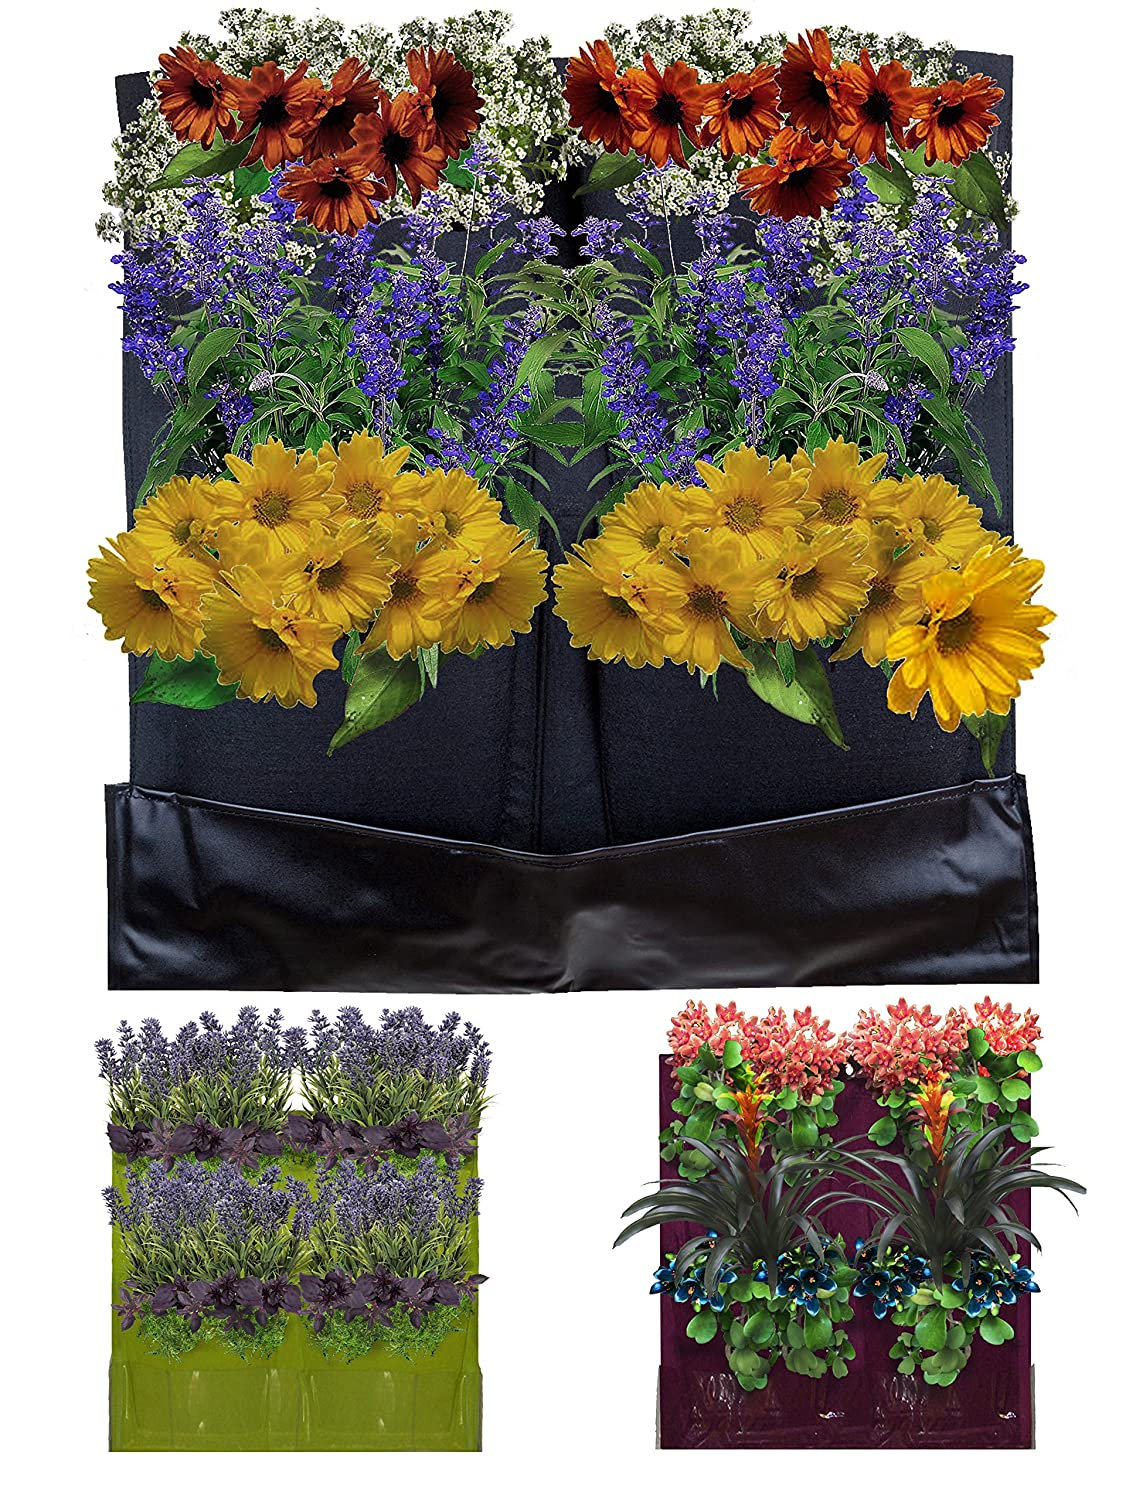 design grow planting green wall horizontal garden best planter decoration walls of vertical bag pocket pot